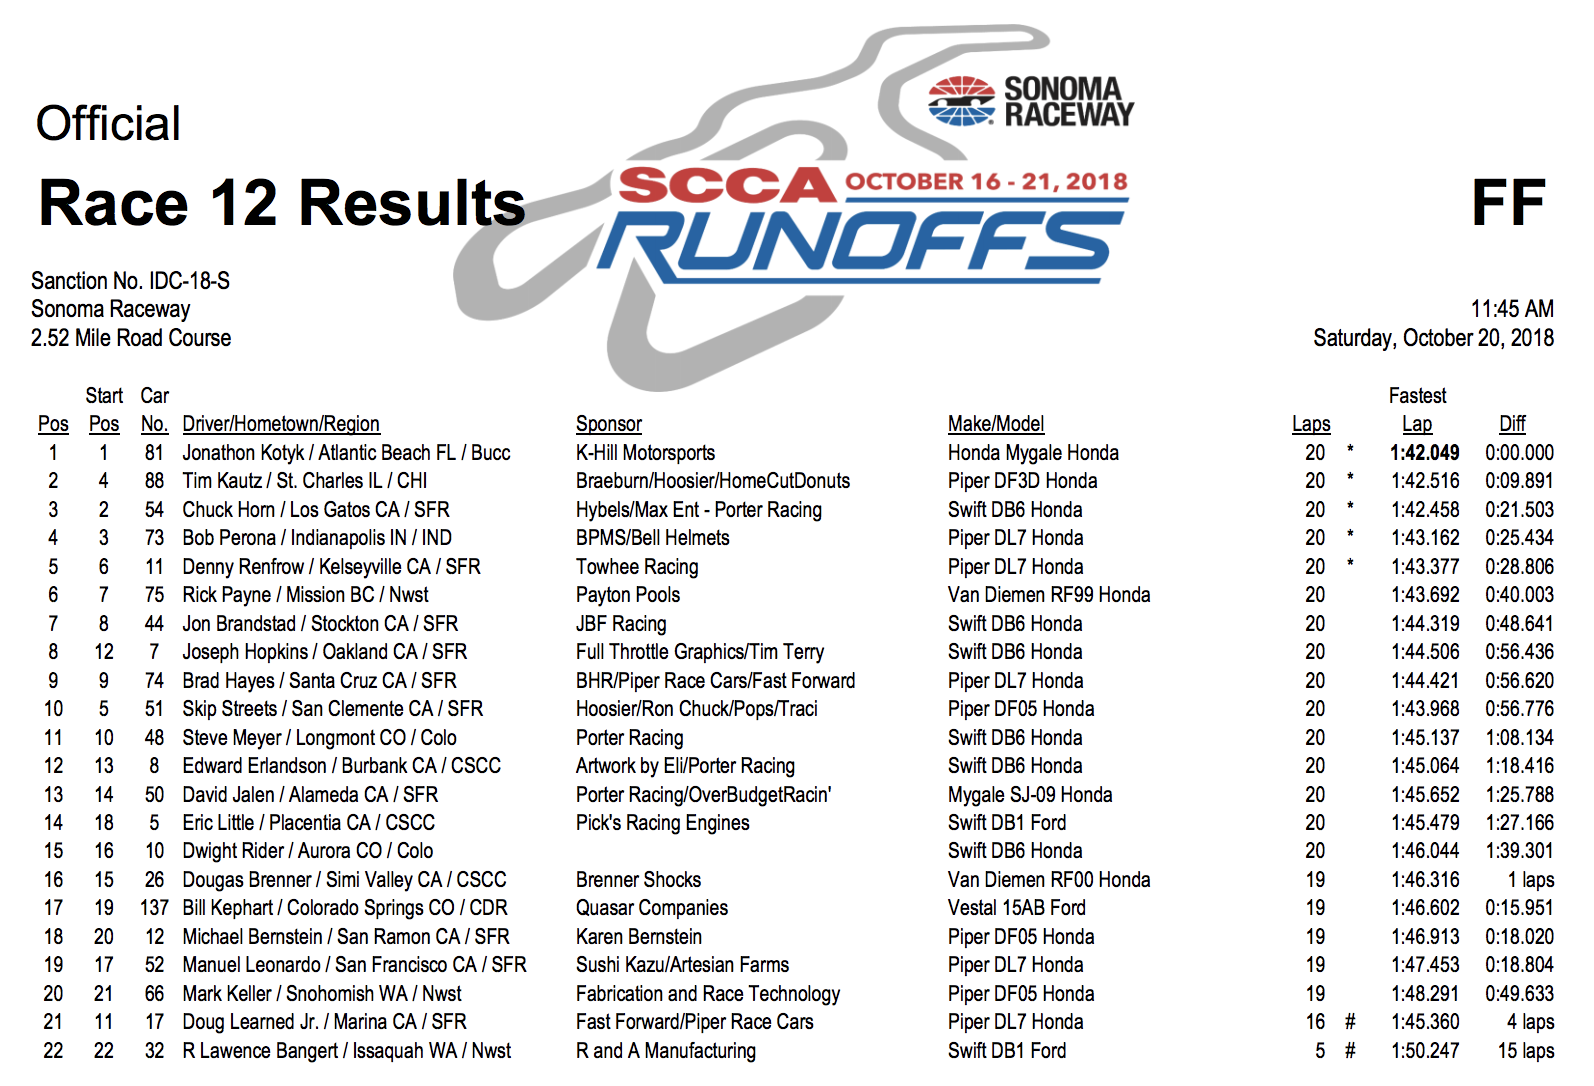 FF Runoffs race results